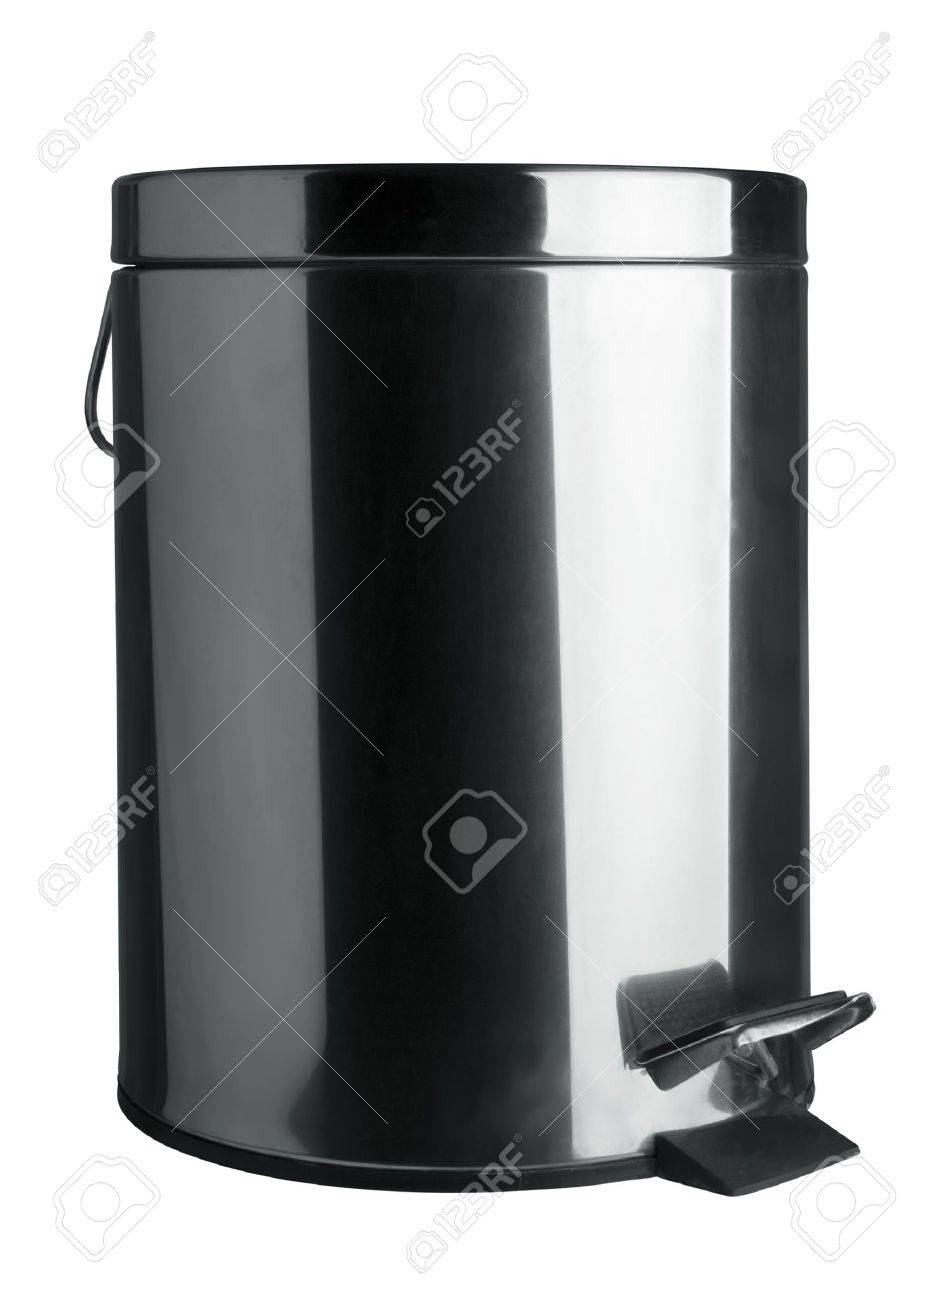 stainless steel garbage bin isolated on white stock photo